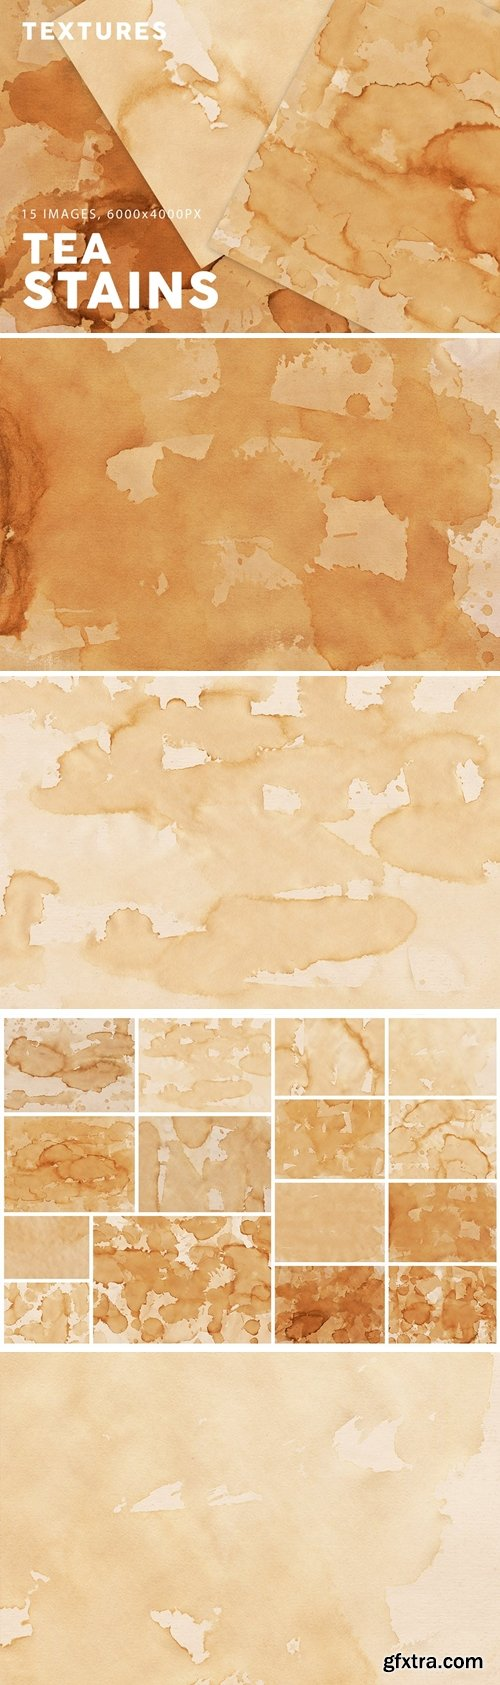 Tea Stains Paper Textures